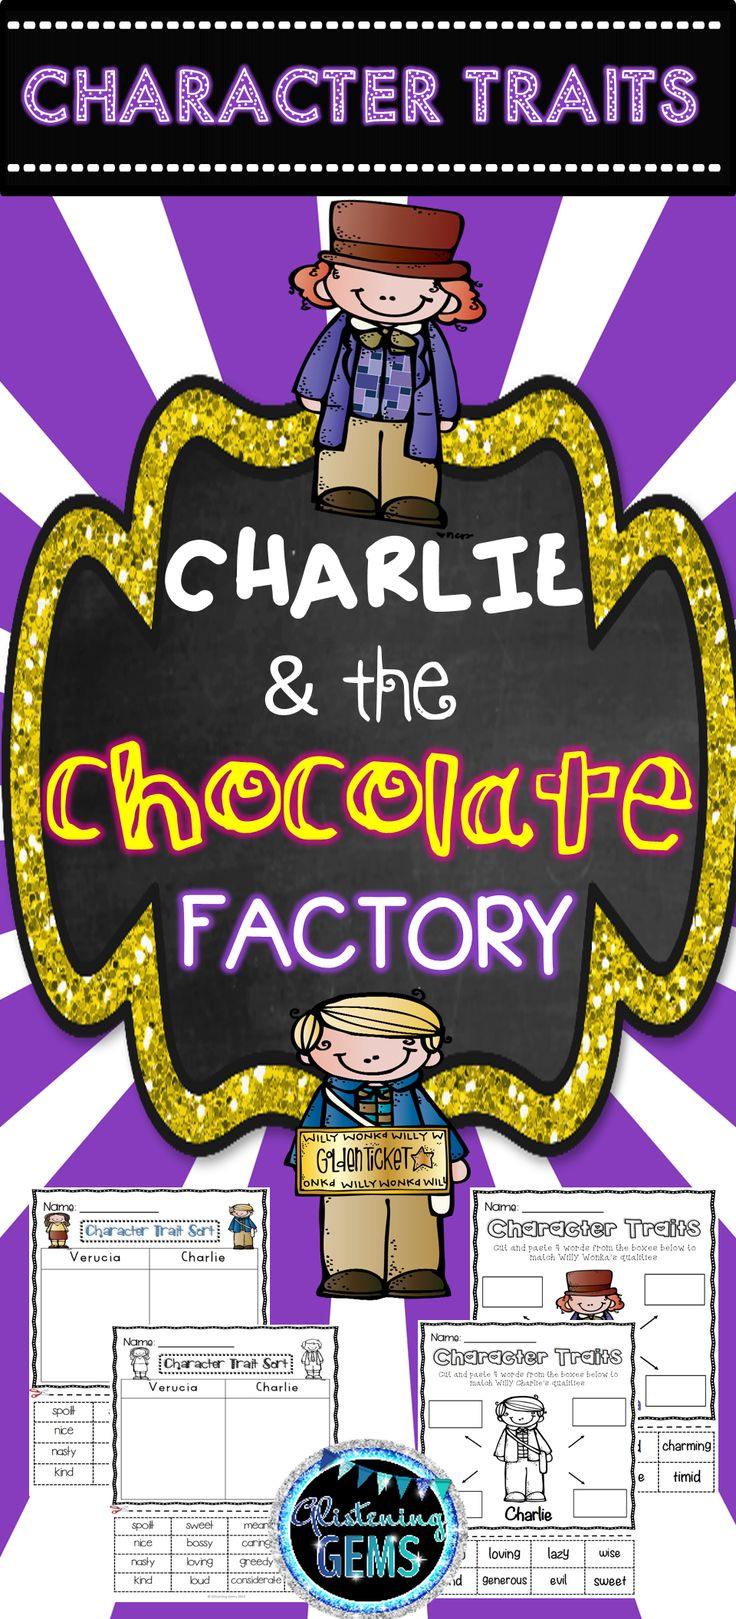 Character Traits Pack -This packet is designed to be utilized after reading the story 'Charlie and the Chocolate Factory' by Roald Dahl. It is perfect to use when undertaking a unit on character traits. Included in this pack is bright and colorful cut and paste sorting, mind map activities, word wall cards and anchor charts (answer sheets) for students to consolidate their understanding of character traits.